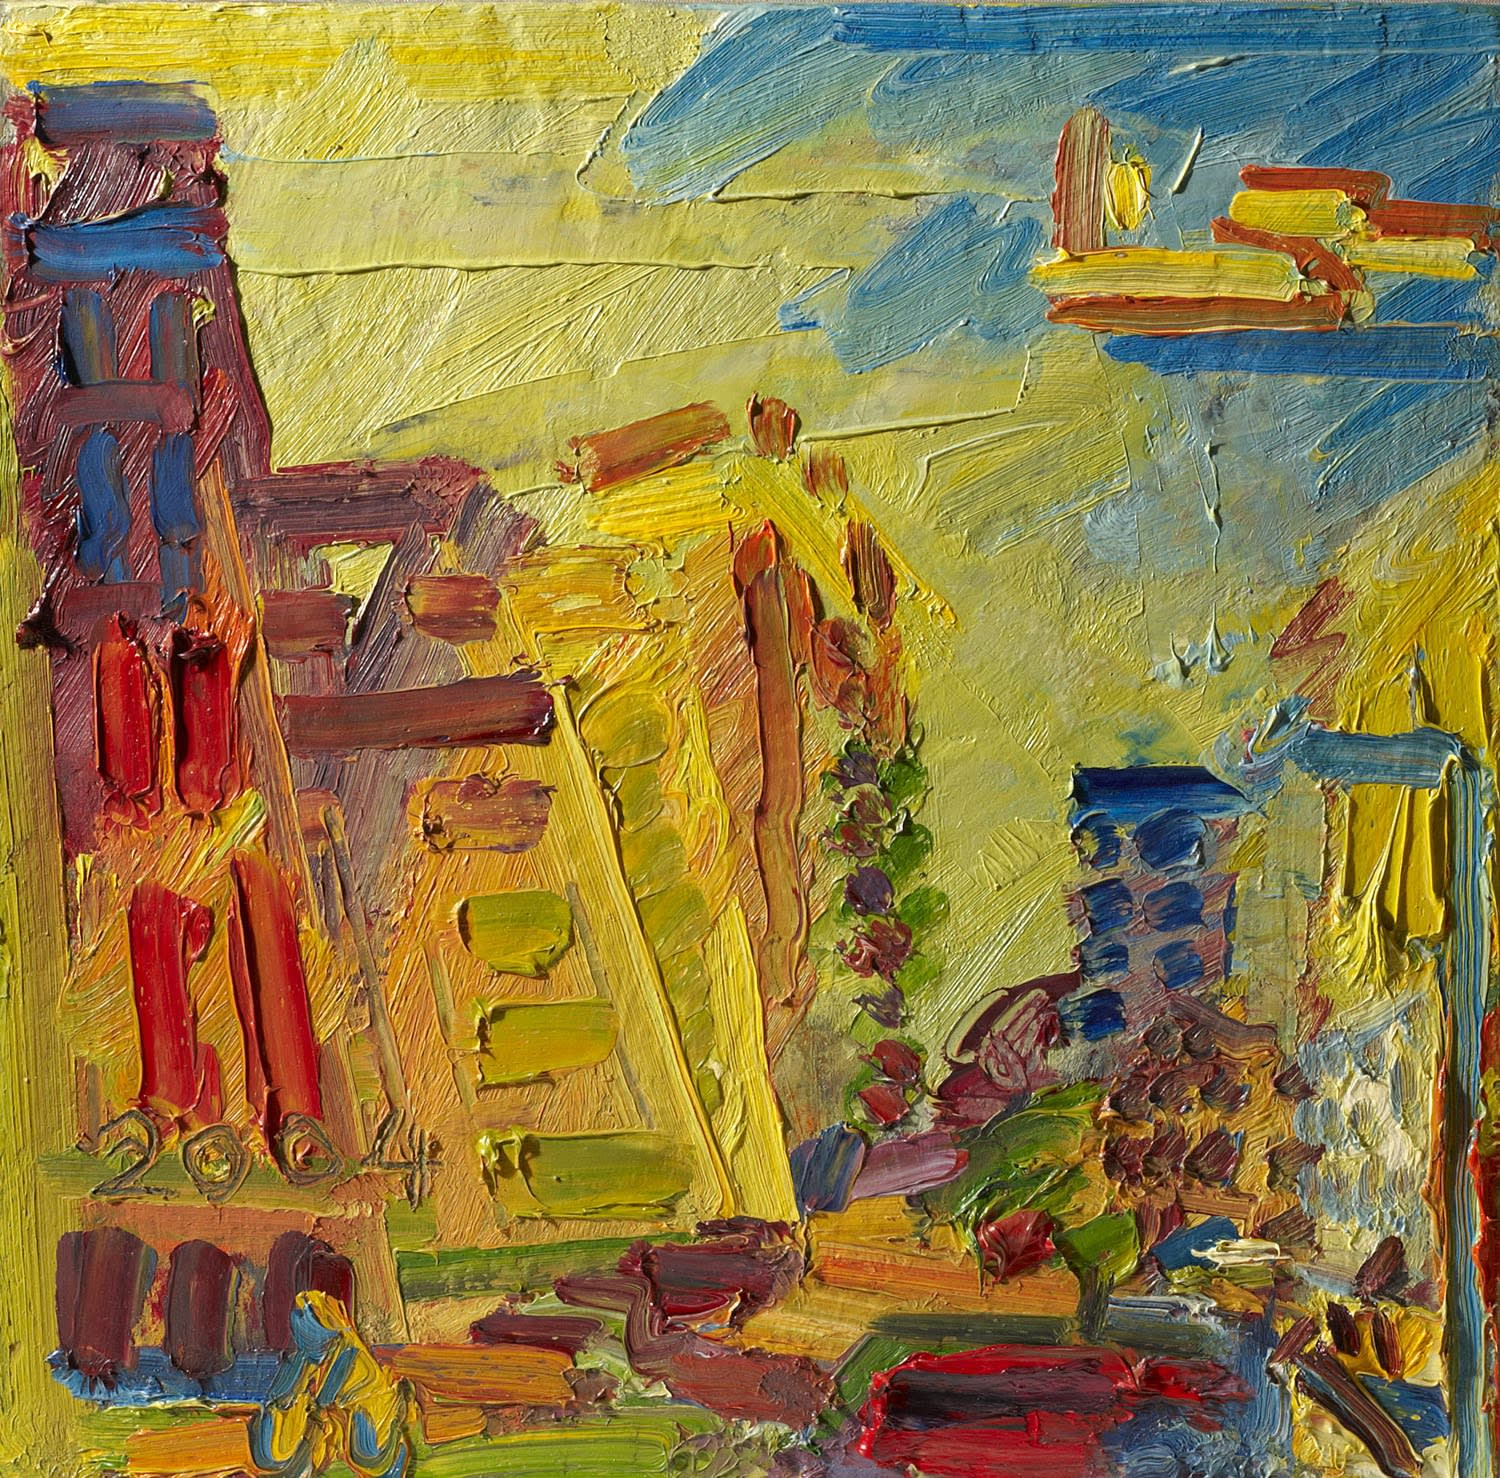 Frank Auerbach (1931-) Mornington Crescent, Summer Morning II 2004 Oil on board 51 x 51 cm Ben Uri Collection © Frank Auerbach, courtesy Marlborough Fine Art To see and discover more about this artist click here